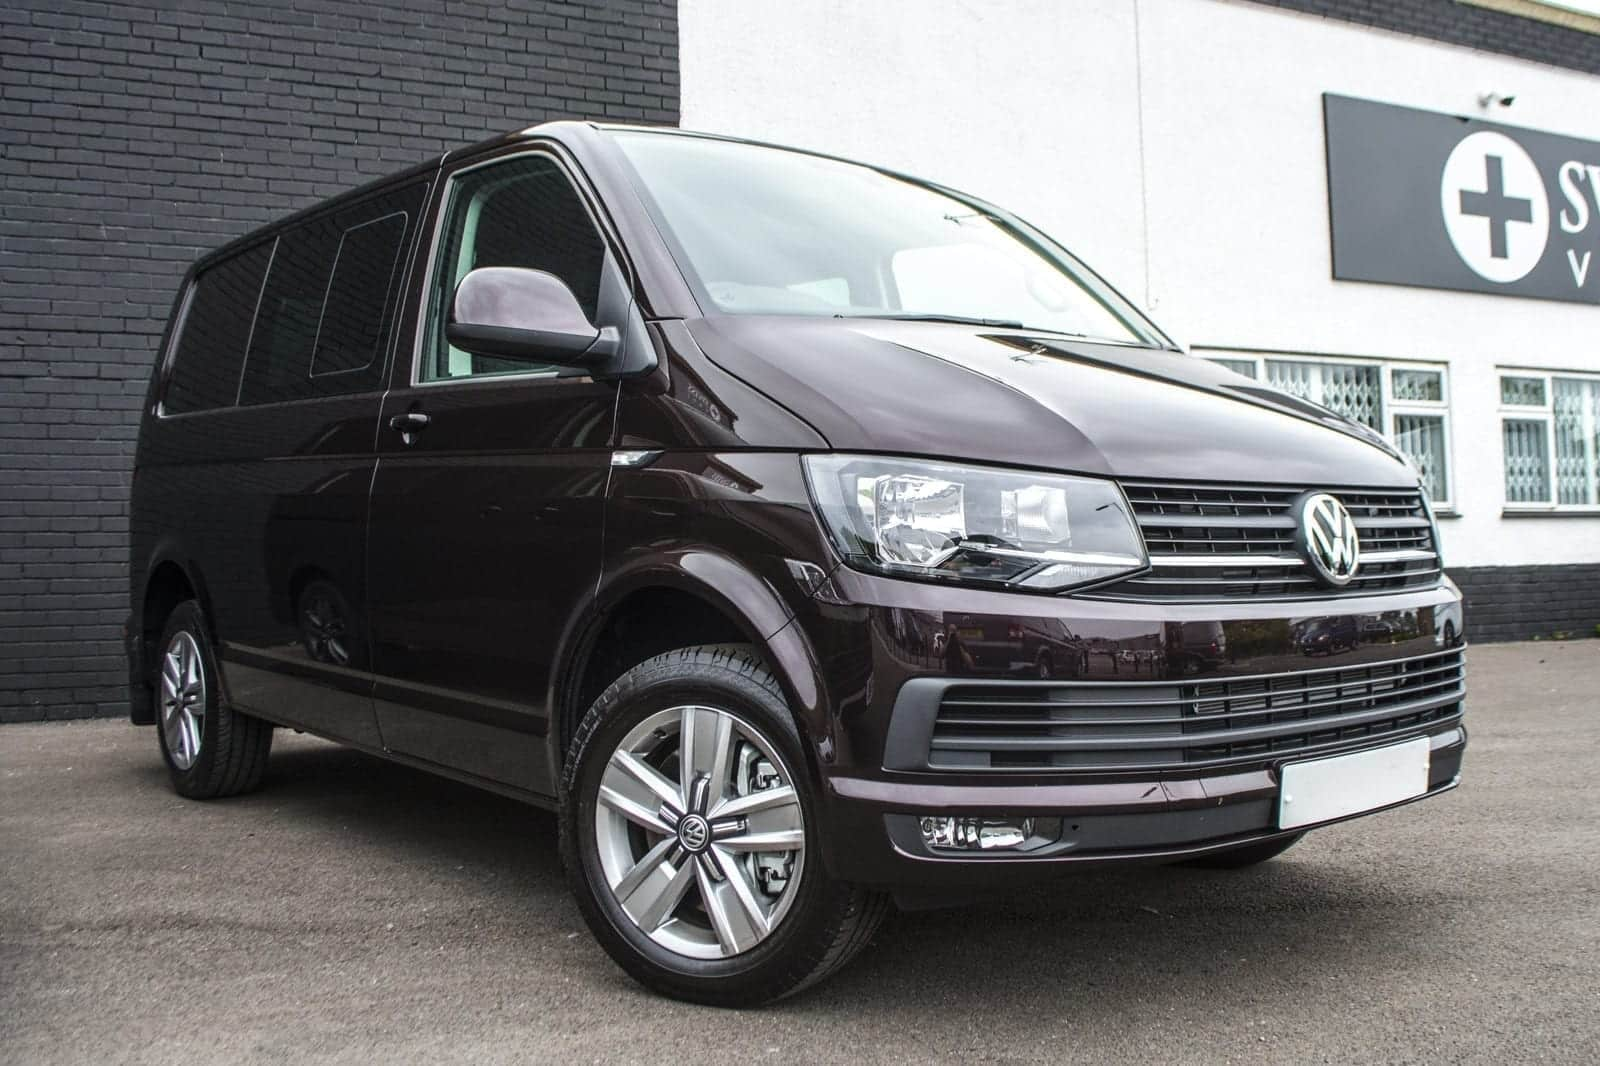 Vw Transporter Highline Kombi Swiss Vans Ltd Bridgend